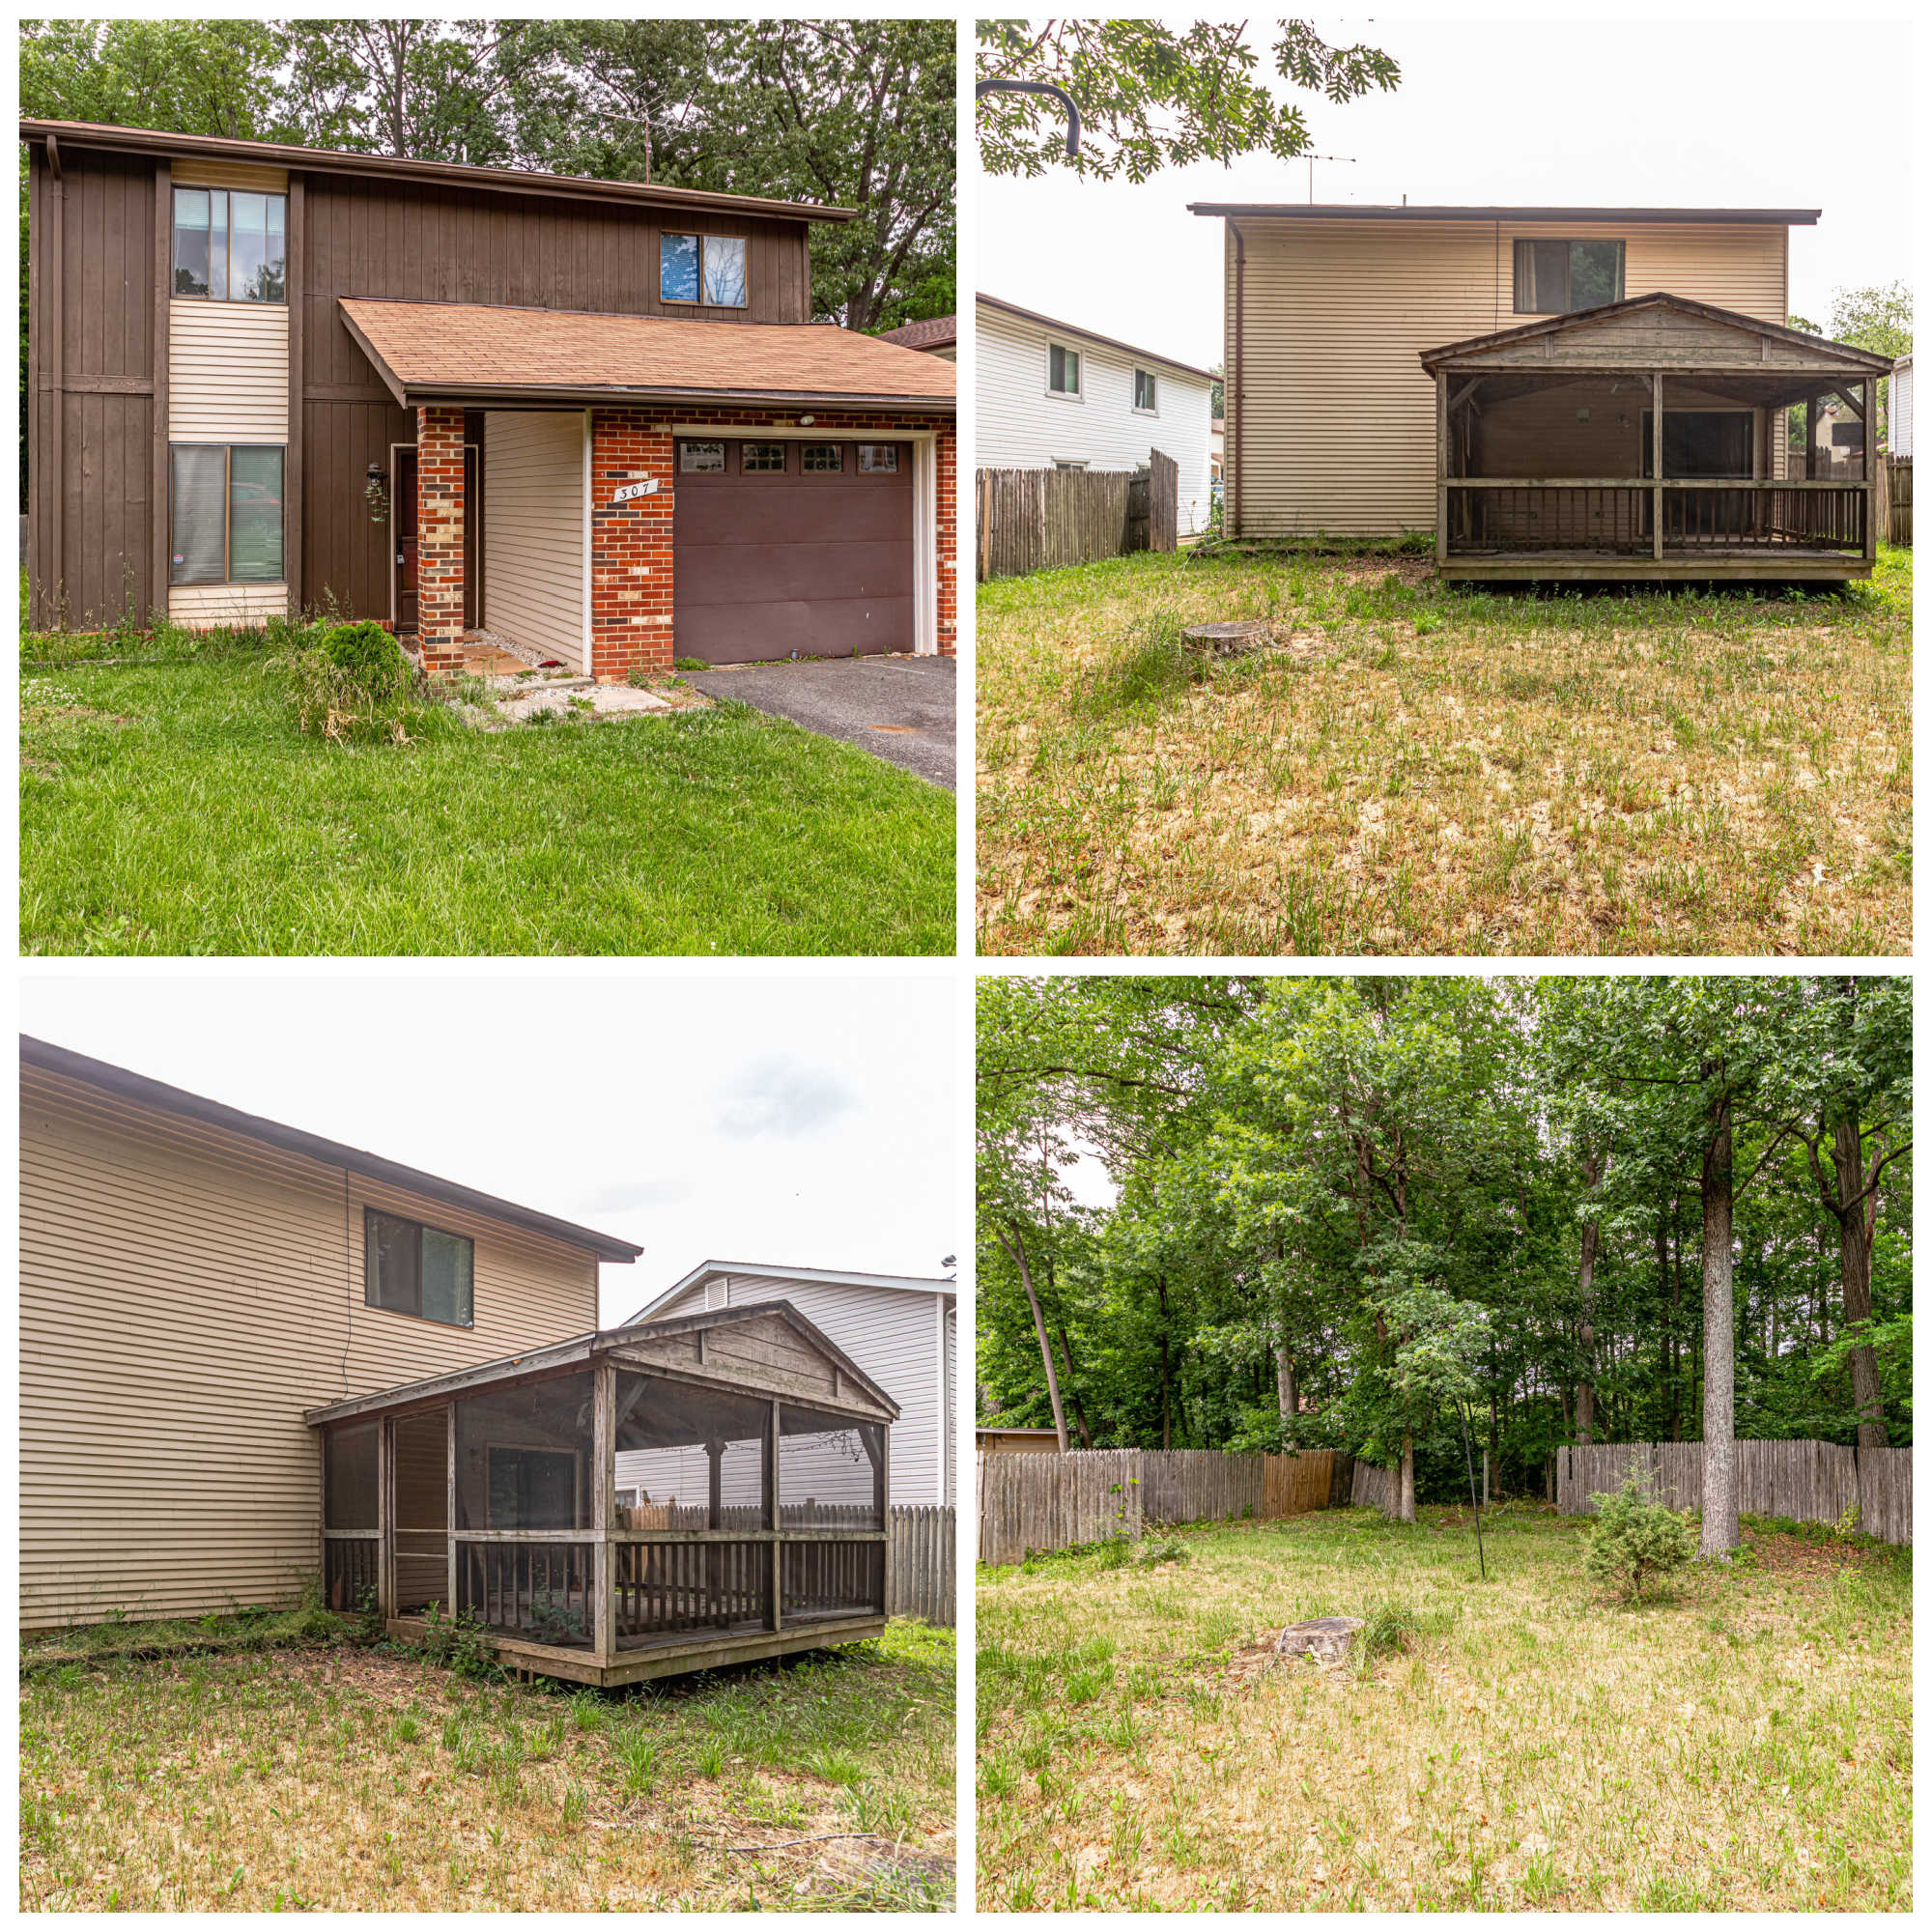 307 Hanford Ct, Sterling- Exterior